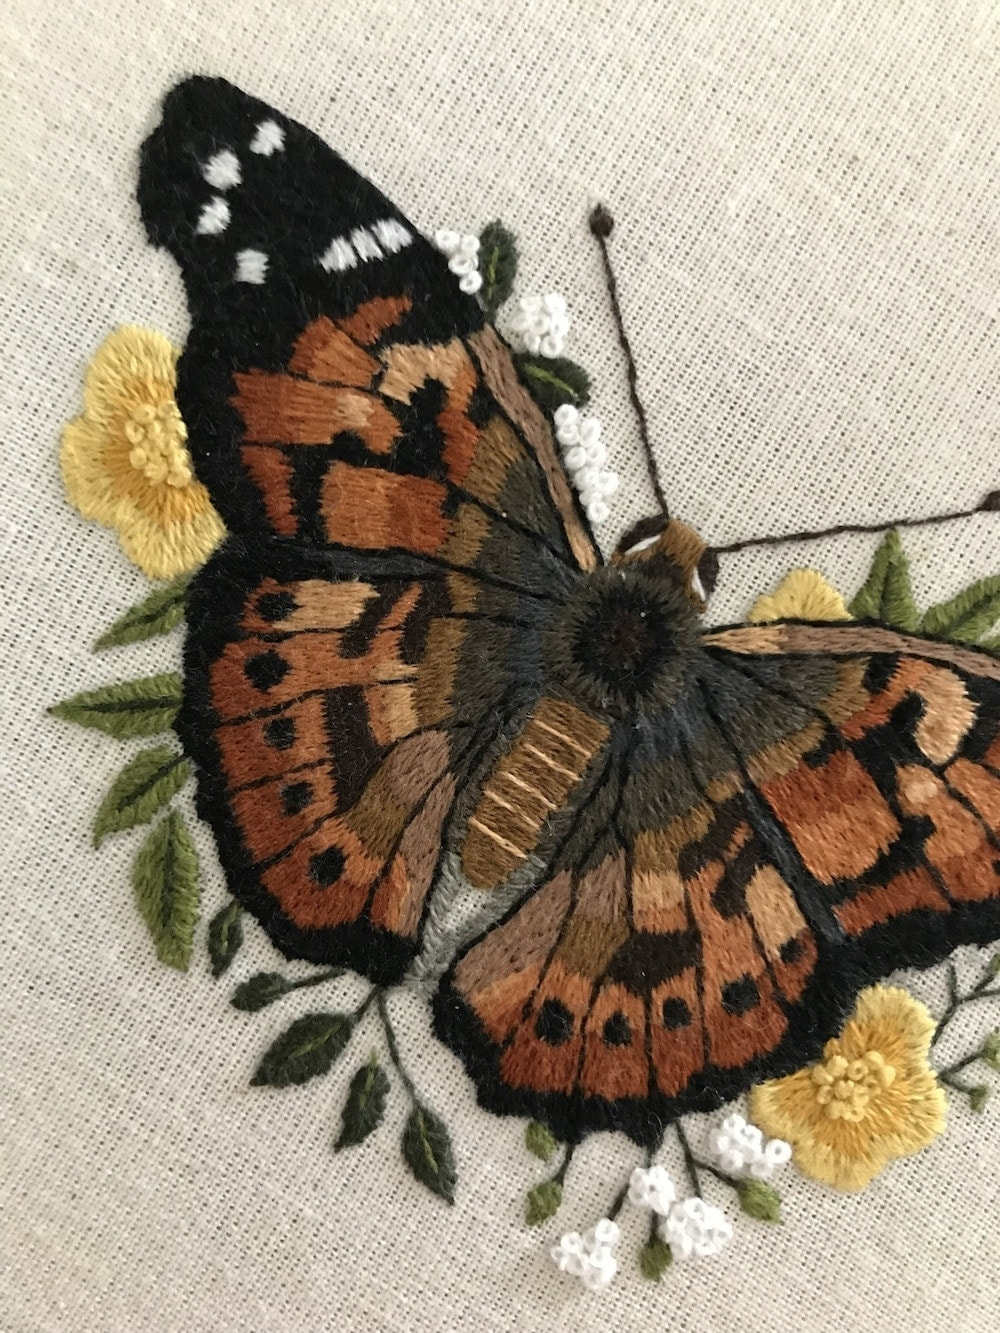 Painted Lady Butterfly thread painting embroidery.jpg